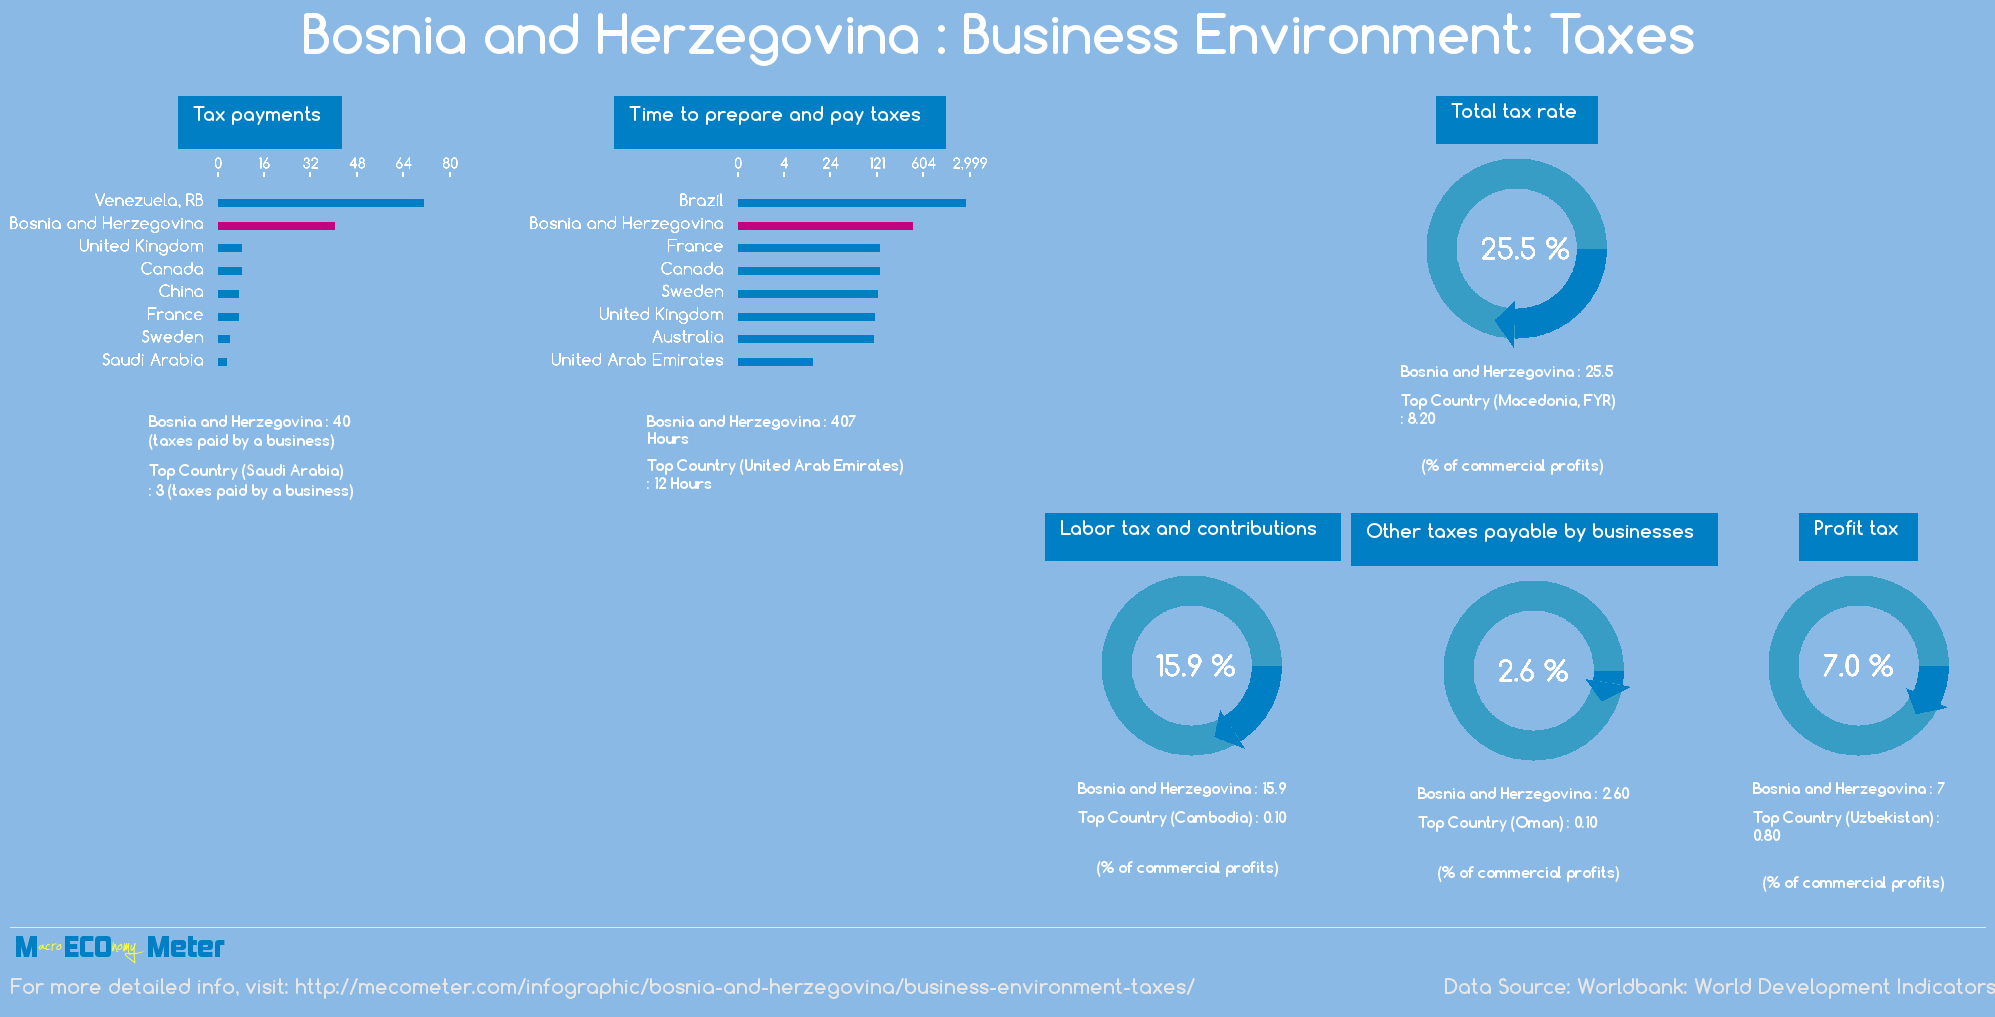 Bosnia and Herzegovina : Business Environment: Taxes